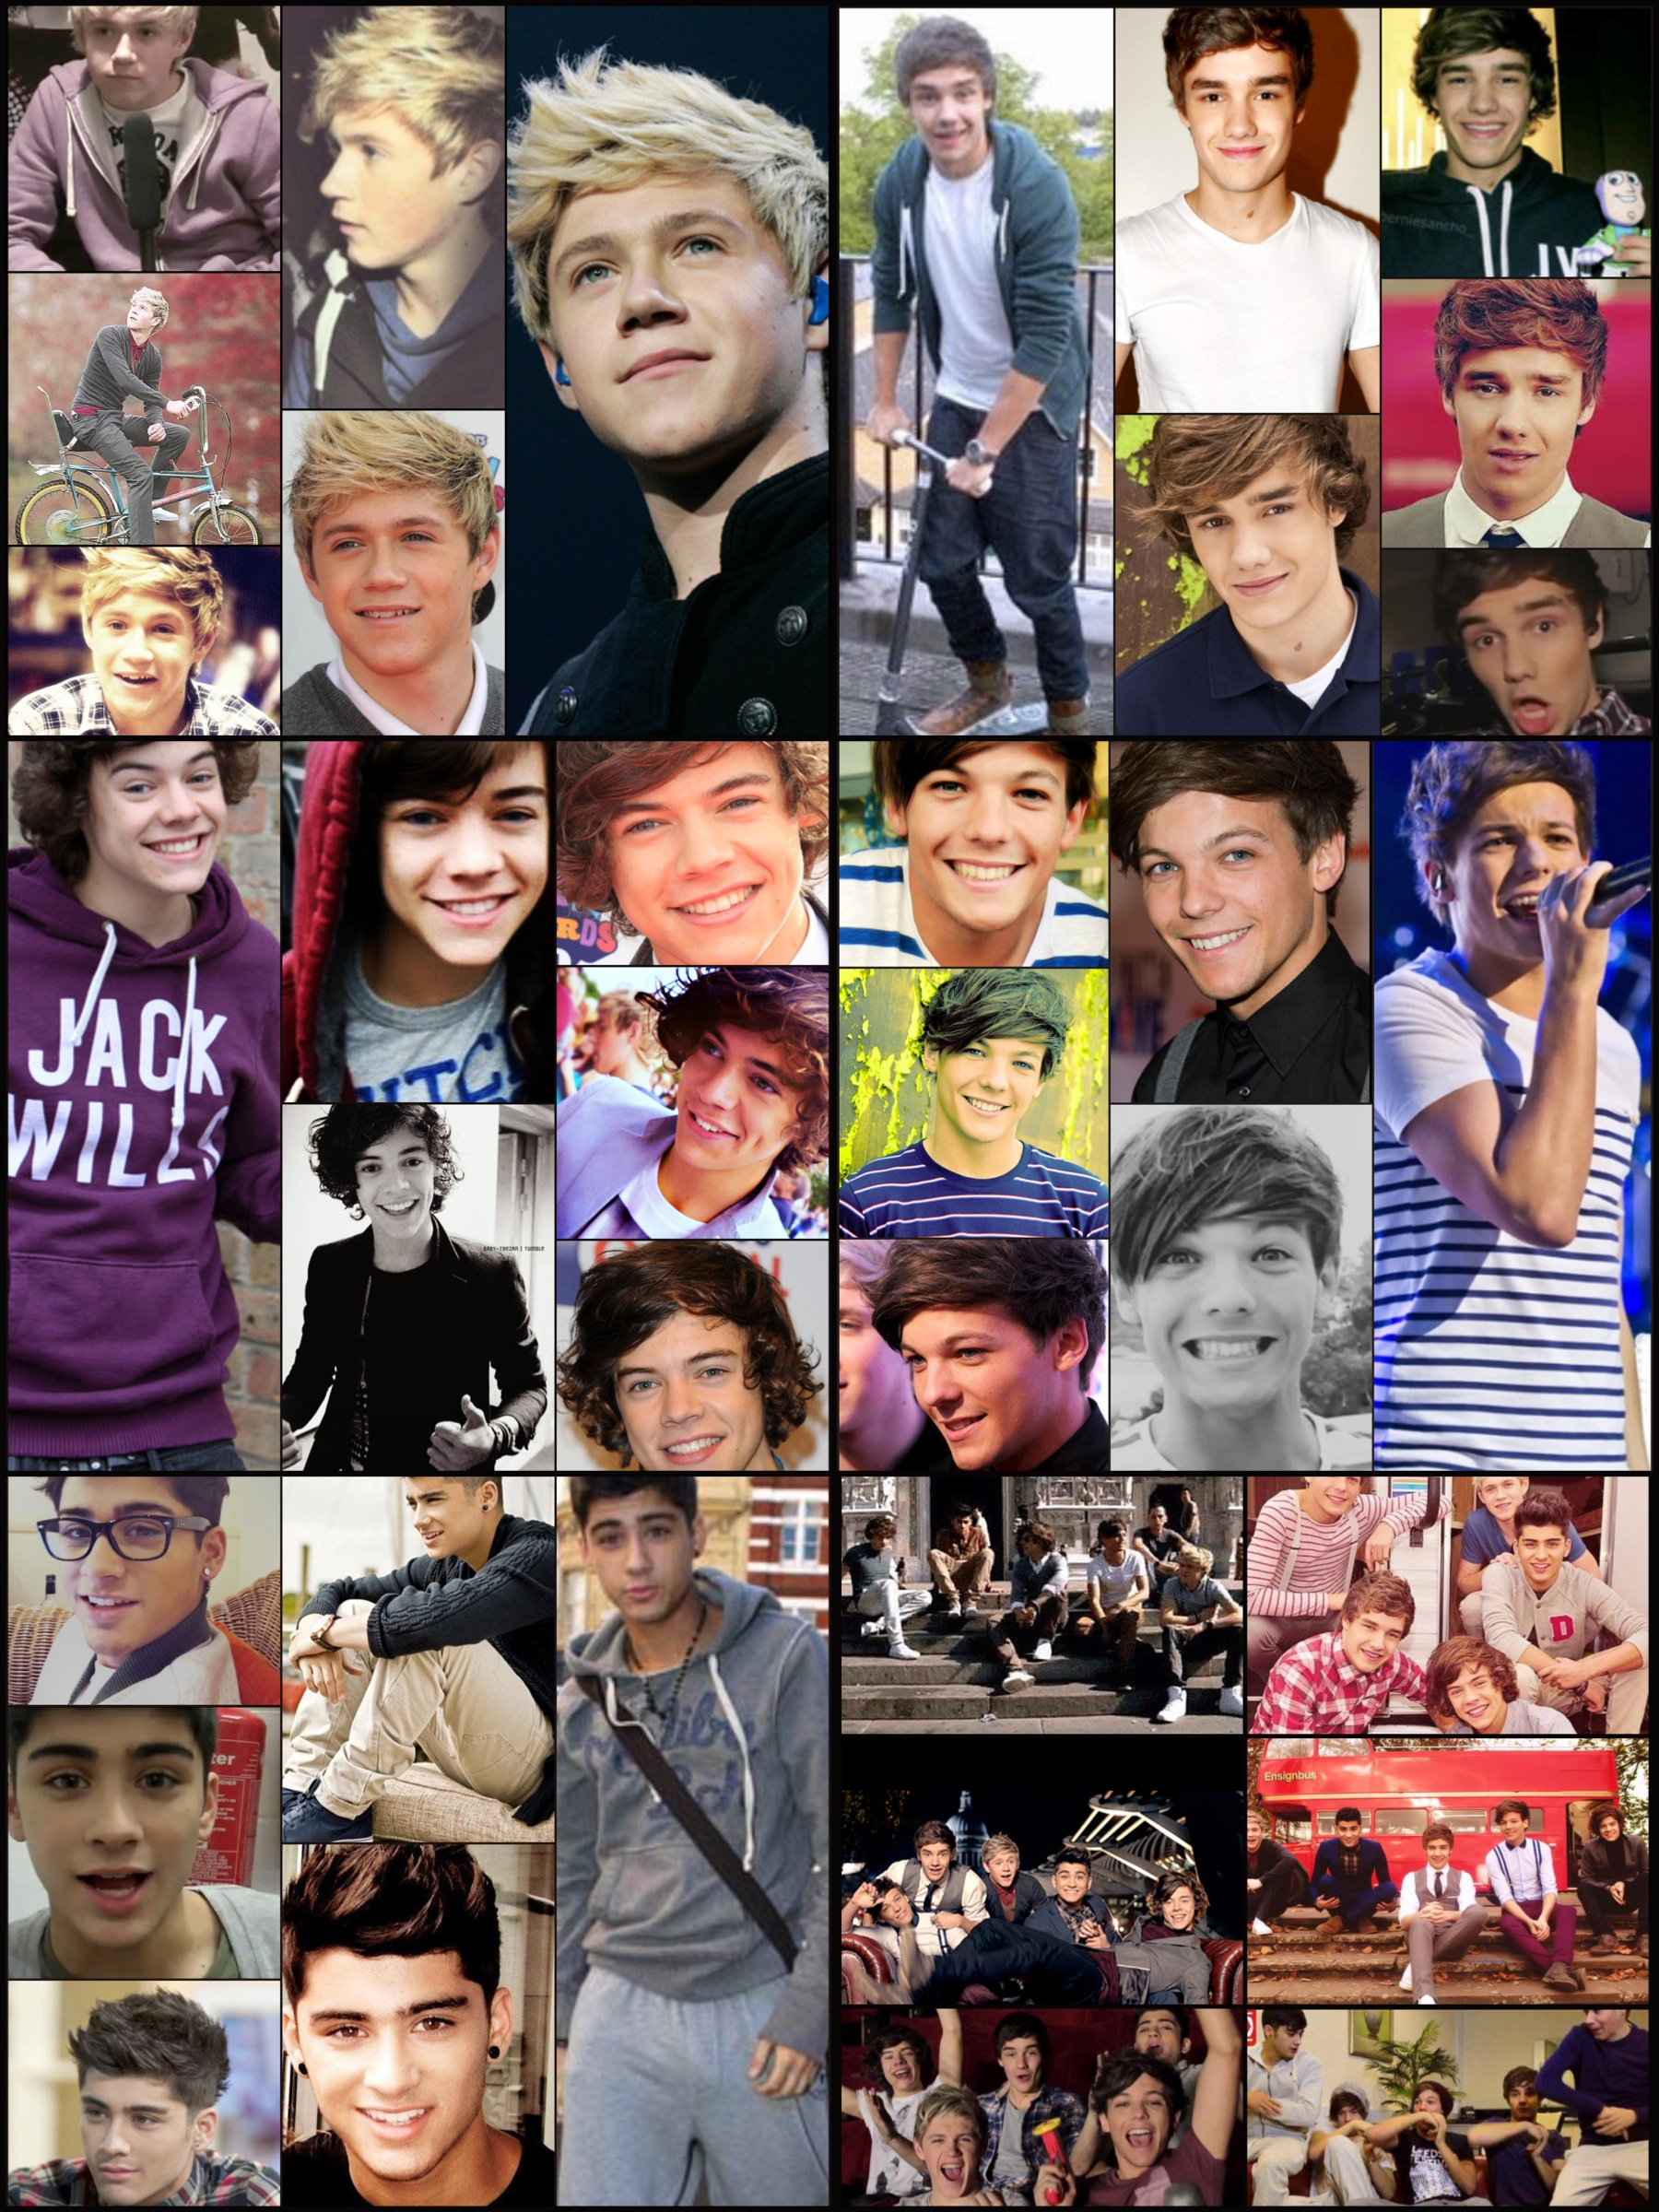 Liam Payne Collage Related Keywords & Suggestions - Liam Payne Collage ...